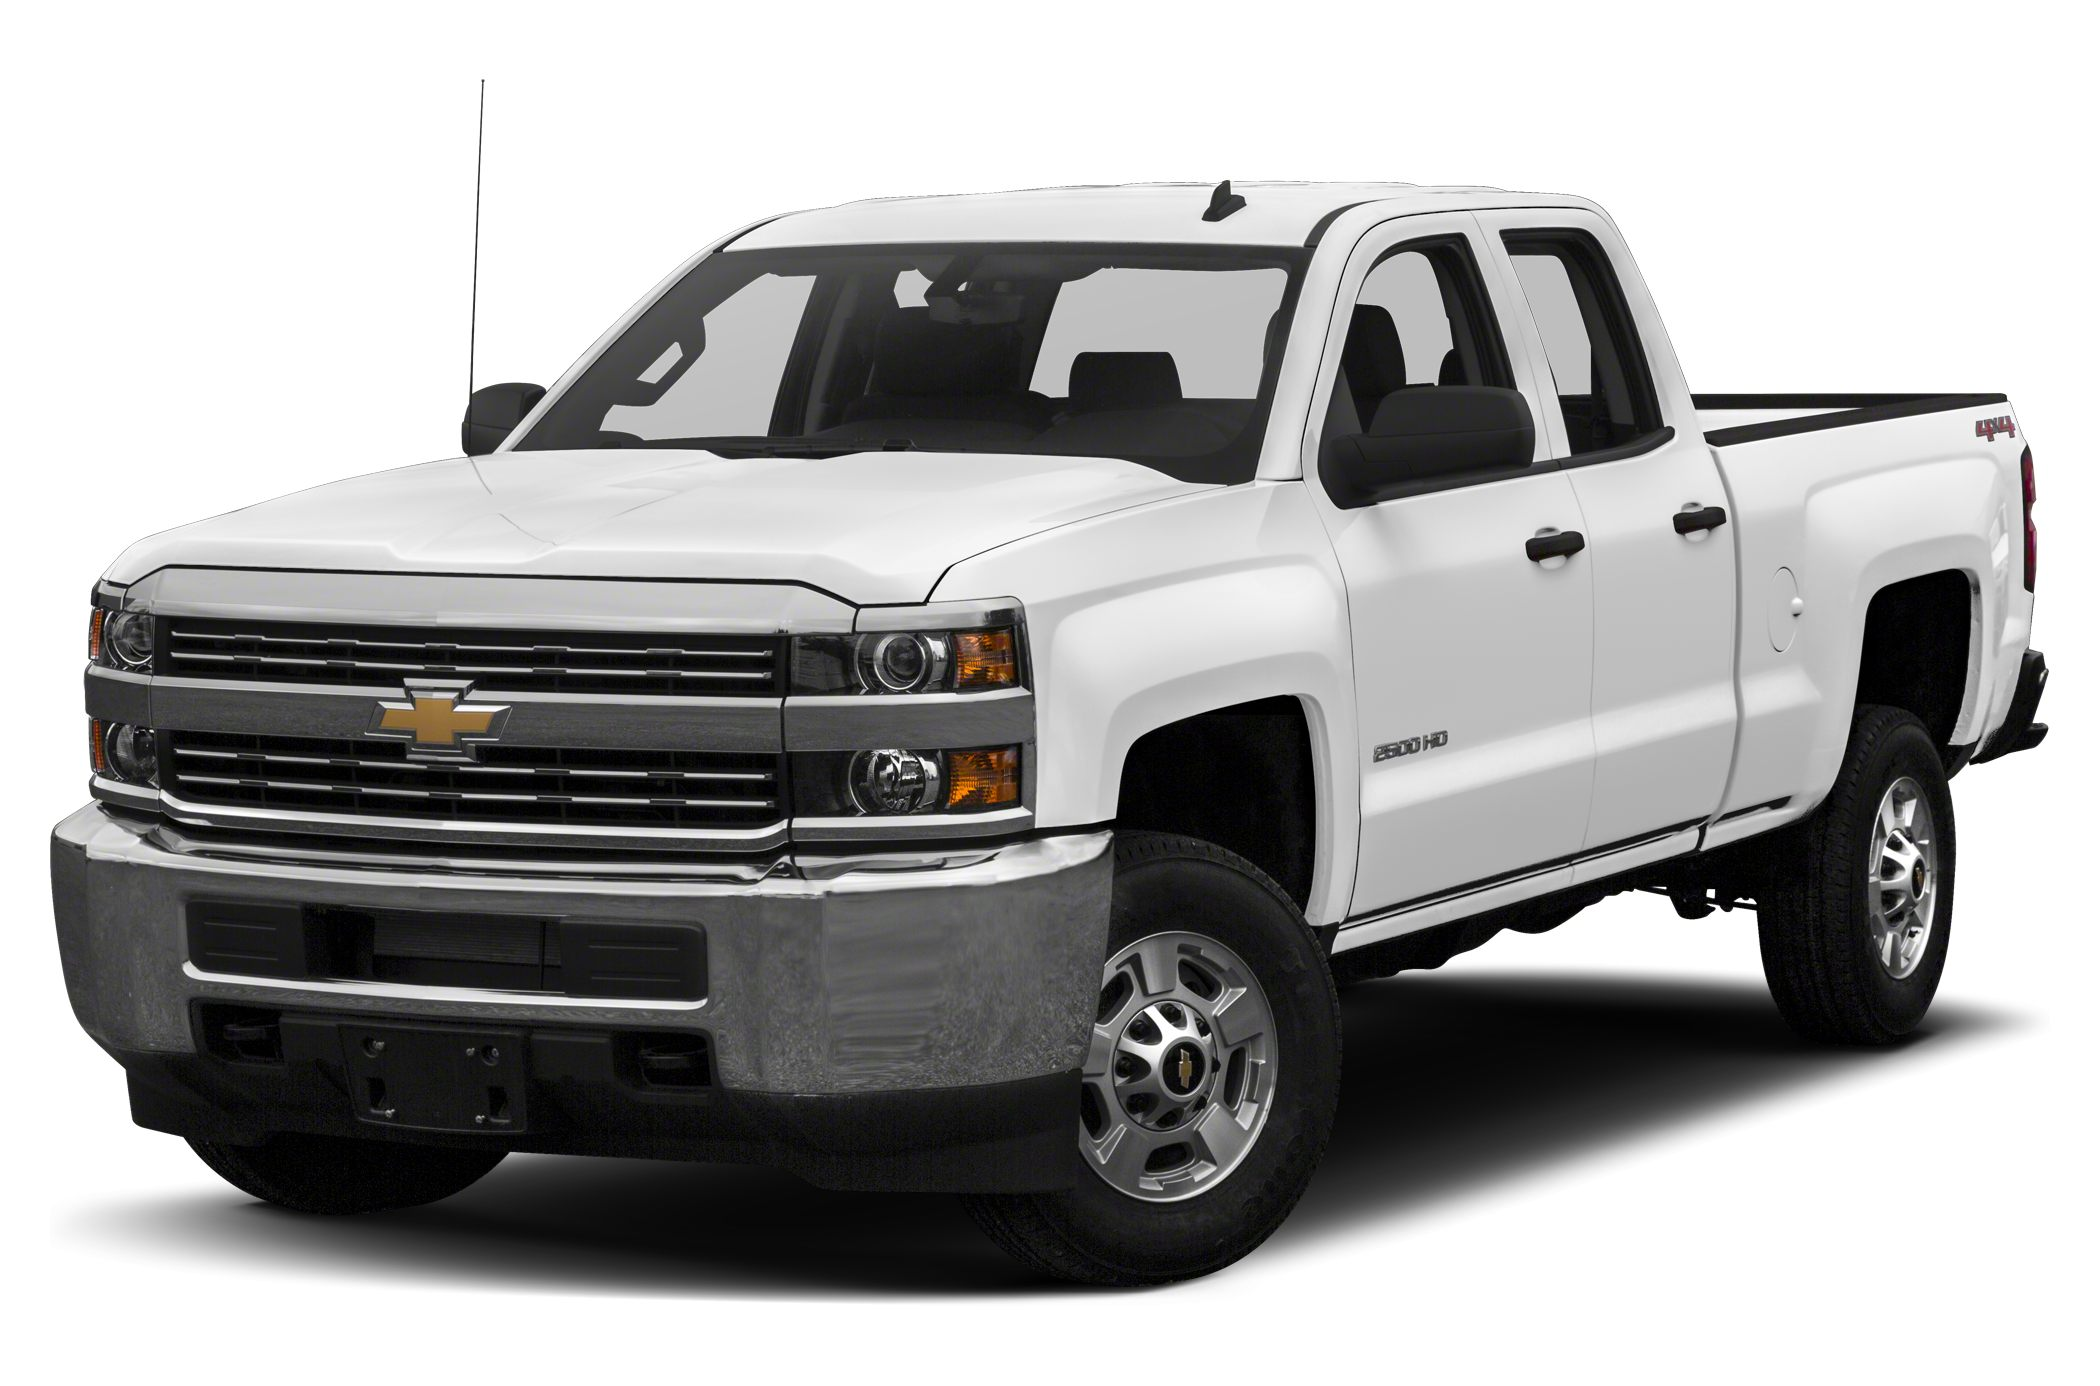 2015 Chevrolet Silverado 2500 LT Extended Cab Pickup for sale in Oneonta for $47,770 with 5 miles.